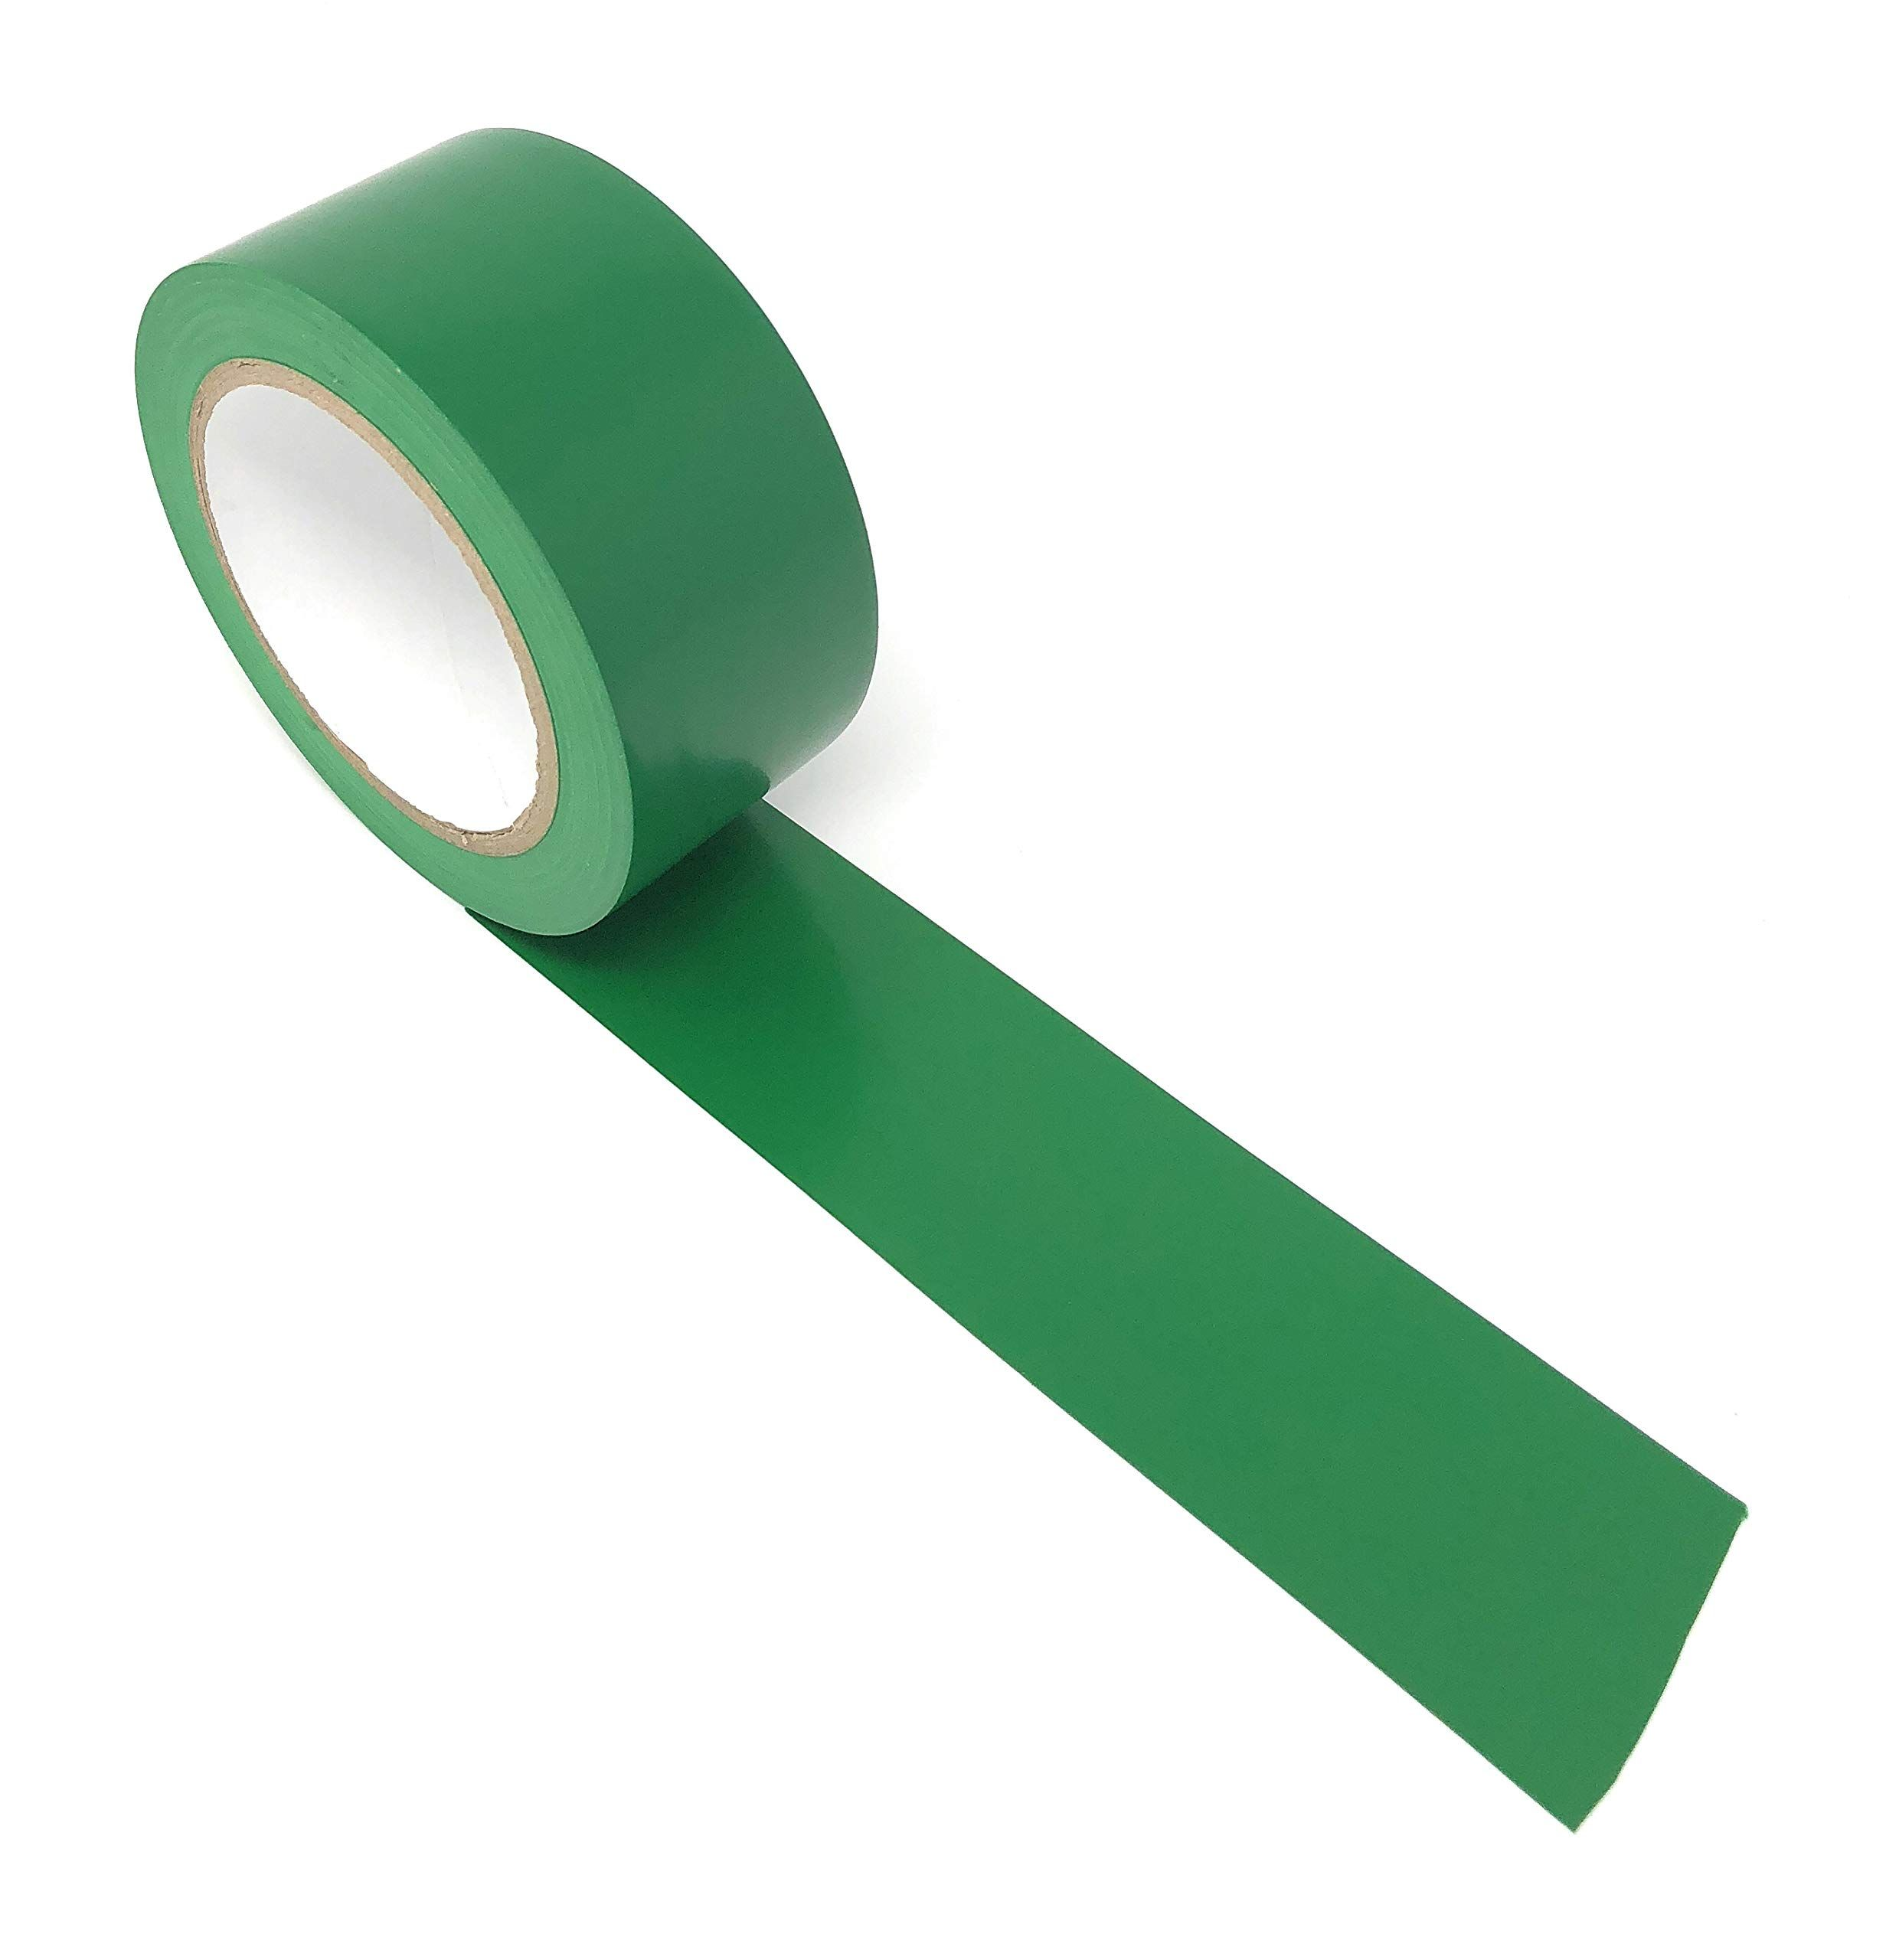 Apt 2 Width X 36 Yds Length Pvc Marking Tape Premium Vinyl Safety Marking And Dance Floor Splicing Tape 6 Mil Thick Multiple Color 5 Vinyl Tape Pvc